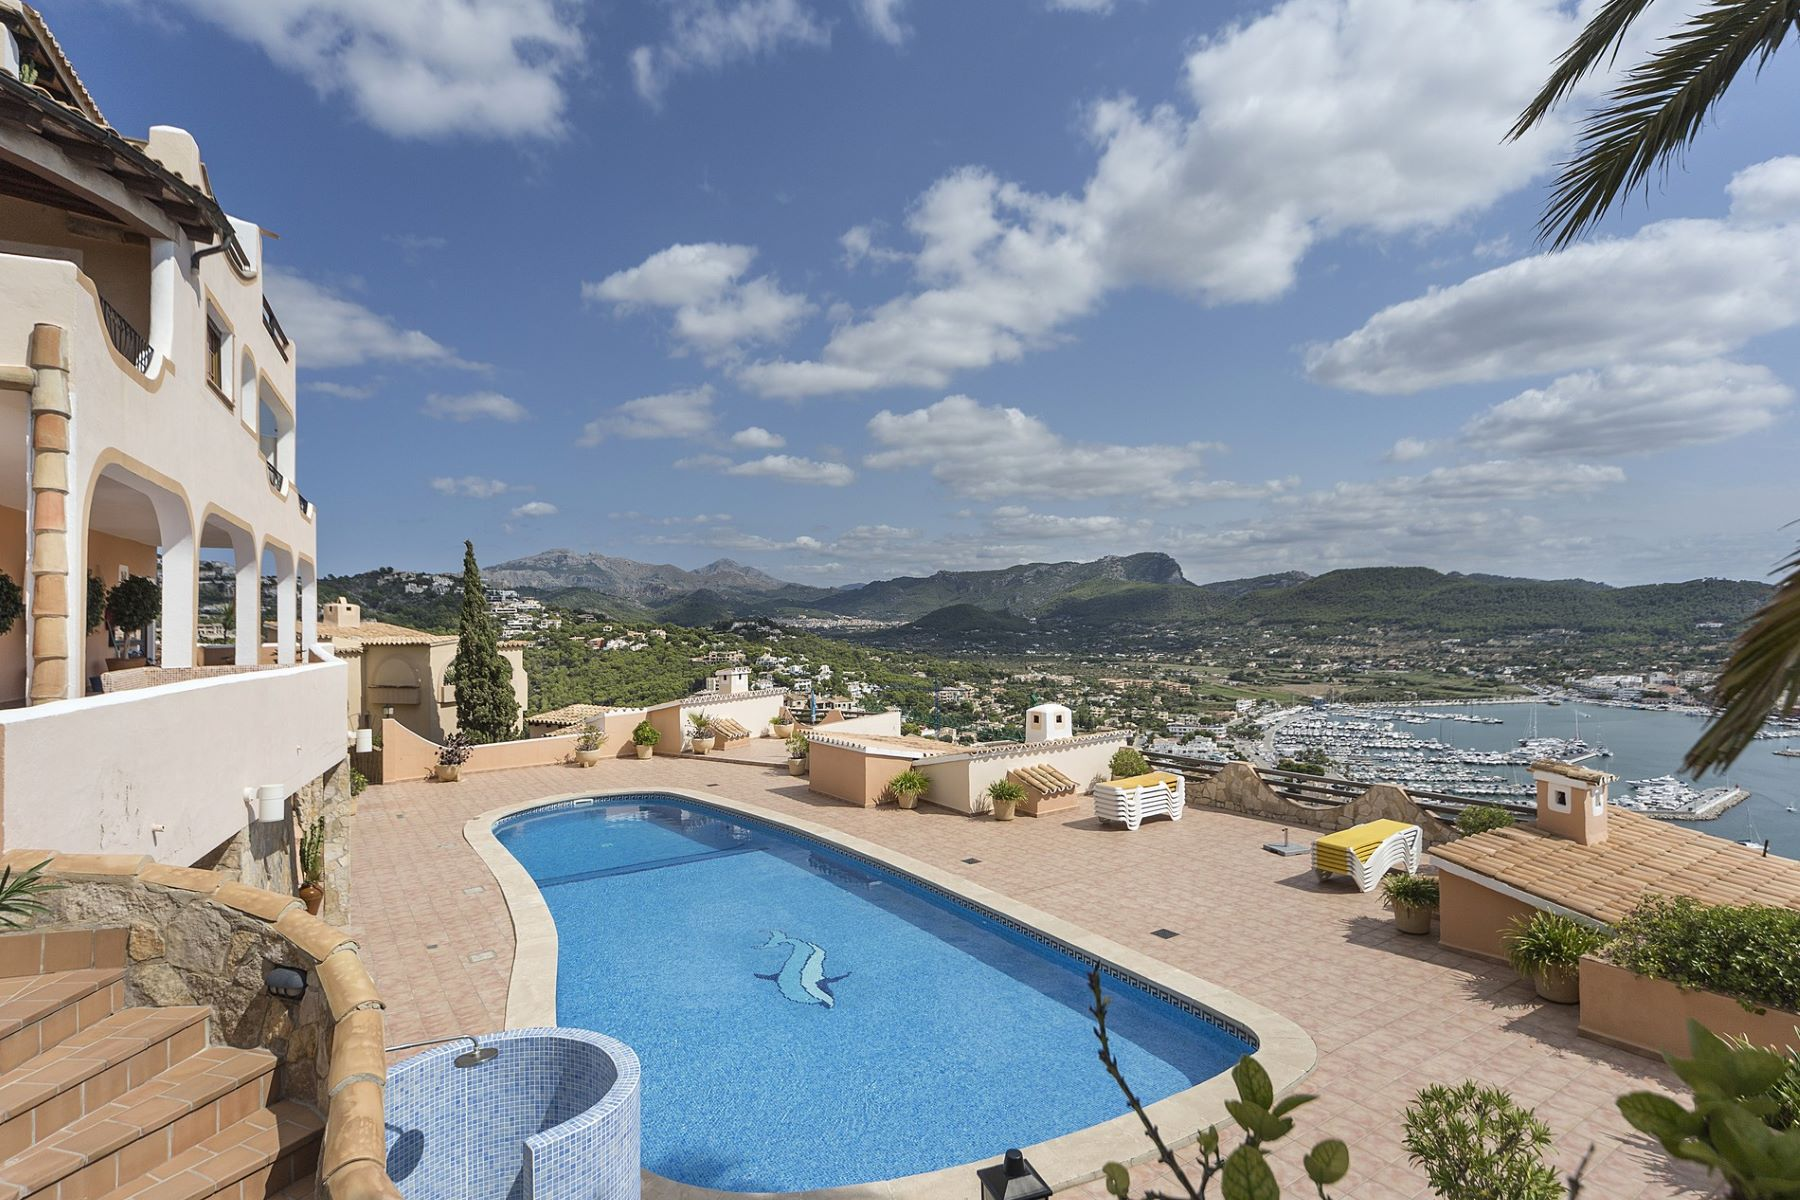 Single Family Home for Sale at Beautiful Penthouse on Top of Port Andratx Andratx, Mallorca, Spain